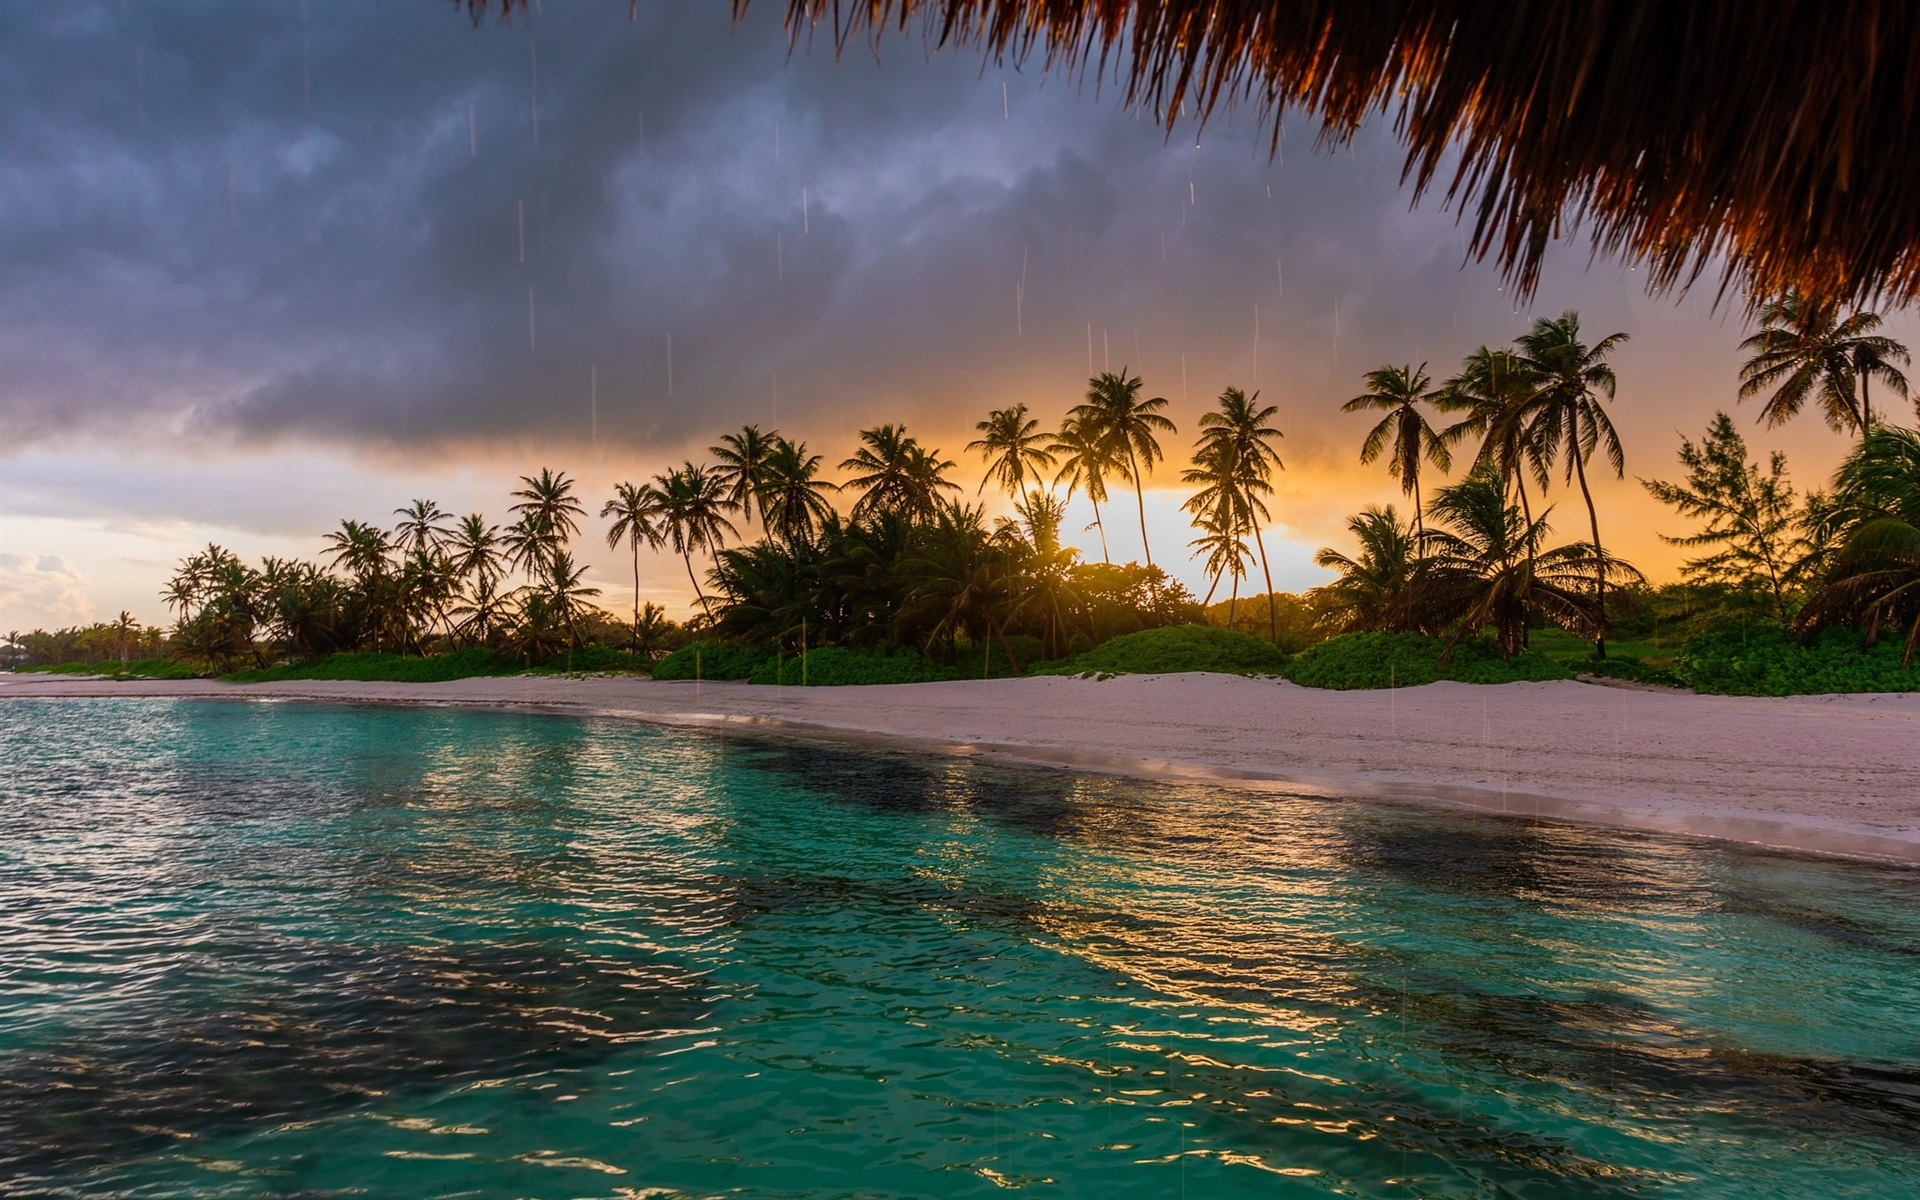 Sunset Over Beach Of Palm Trees Hd Wallpaper: Wallpaper Beach, Palm Trees, Ocean, Sunset 1920x1200 HD